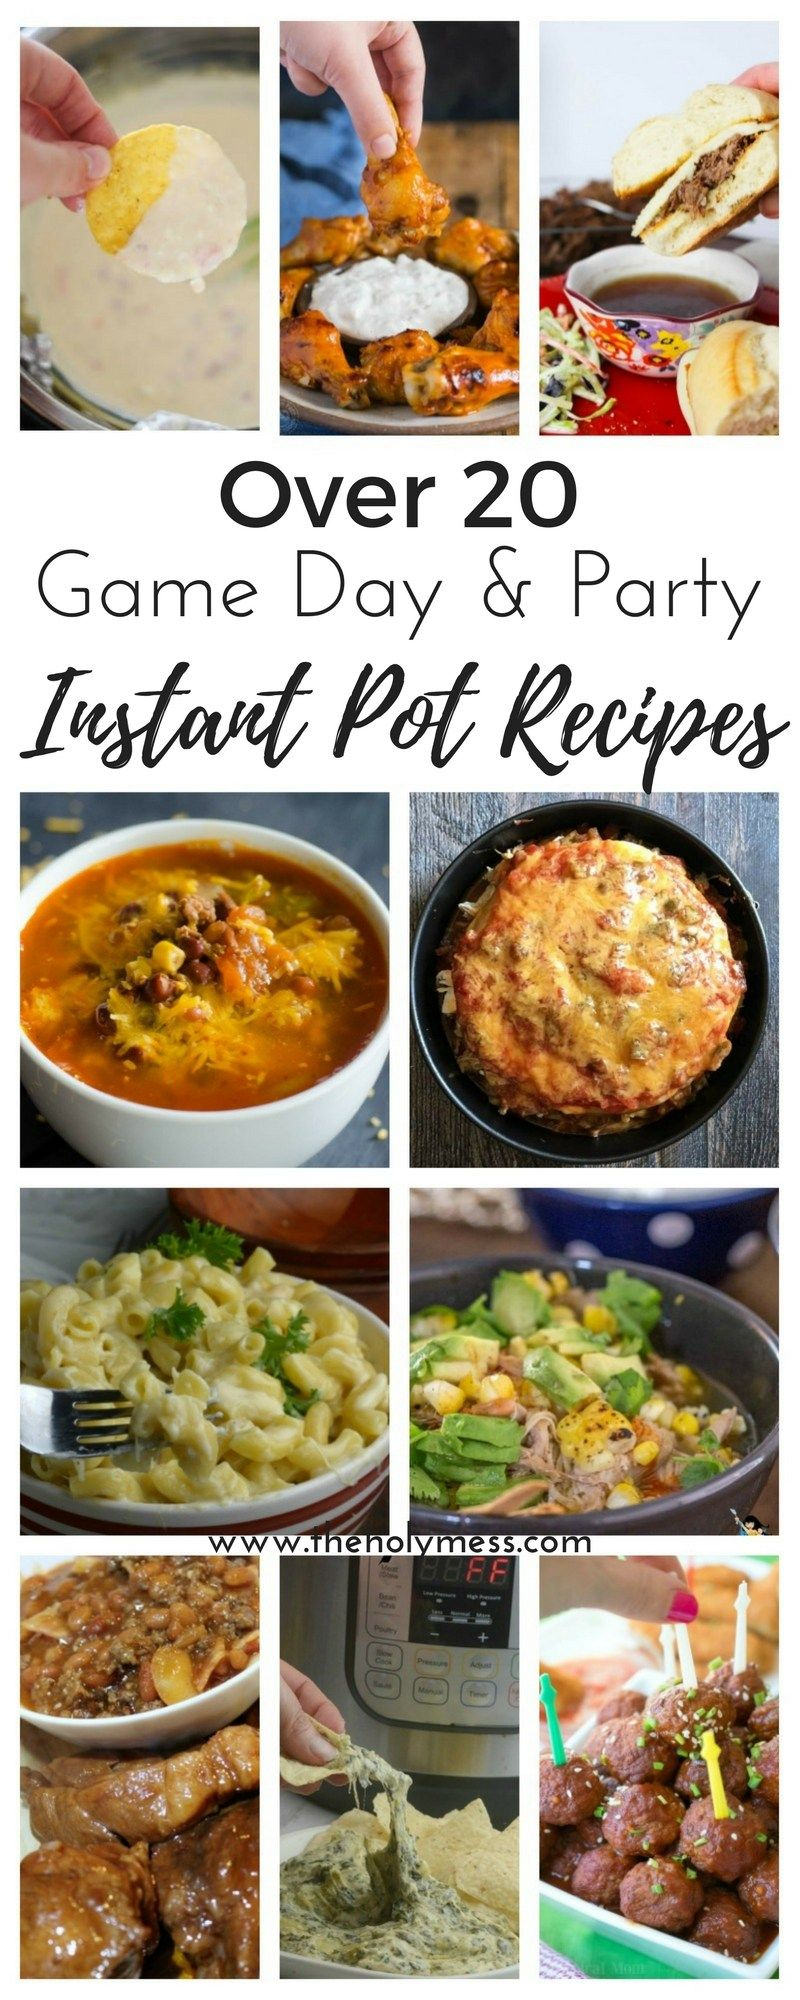 Are you hosting a crowd for a big game day or tailgating? Check out these awesome Instant Pot game day and party recipes that your guests will love.